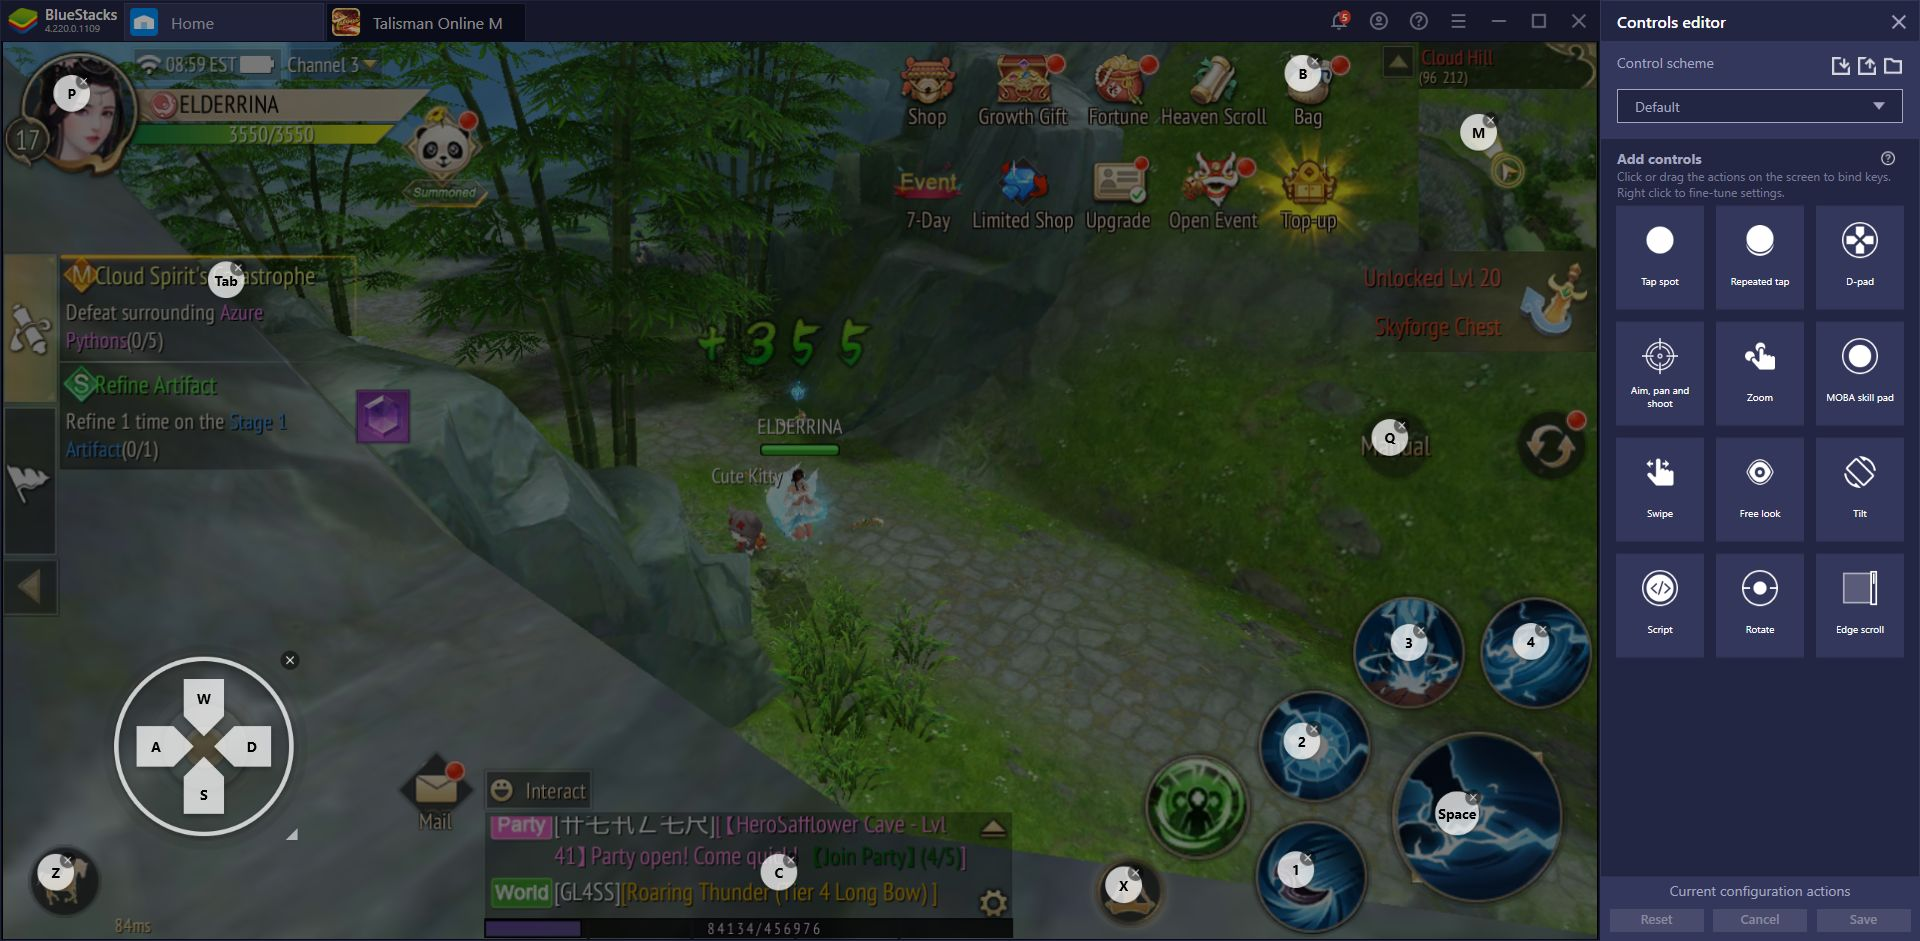 Talisman Online M on PC – How to Install and Play This New Mobile MMORPG on PC With BlueStacks